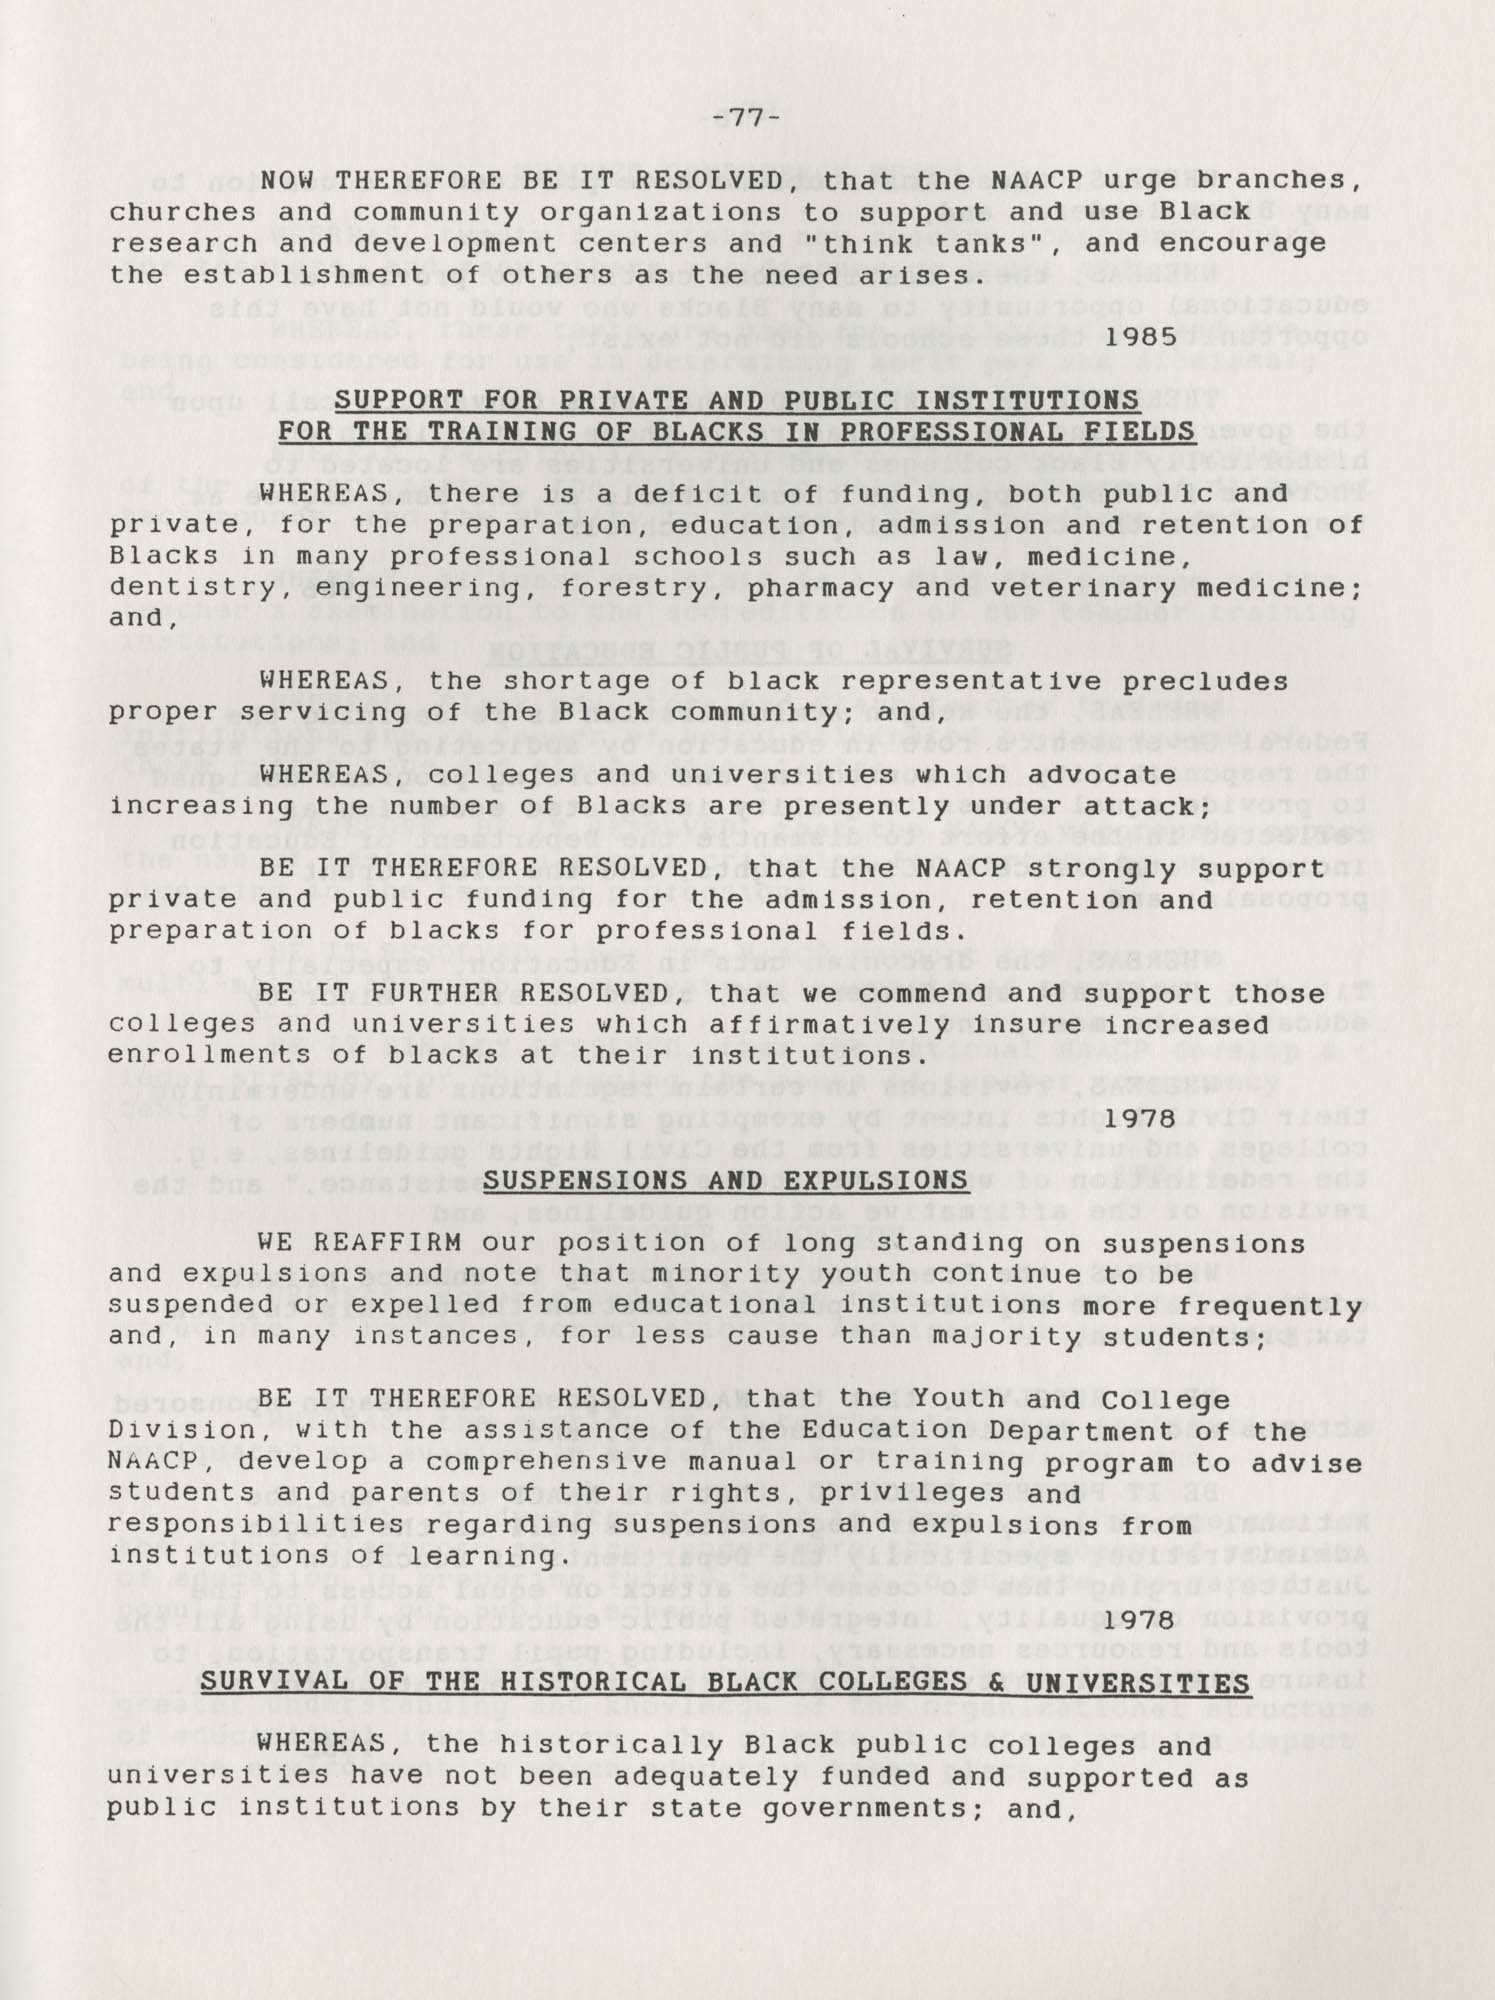 NAACP Resolutions on Education, 1970-1989, Index to Education Resolutions, Page 77